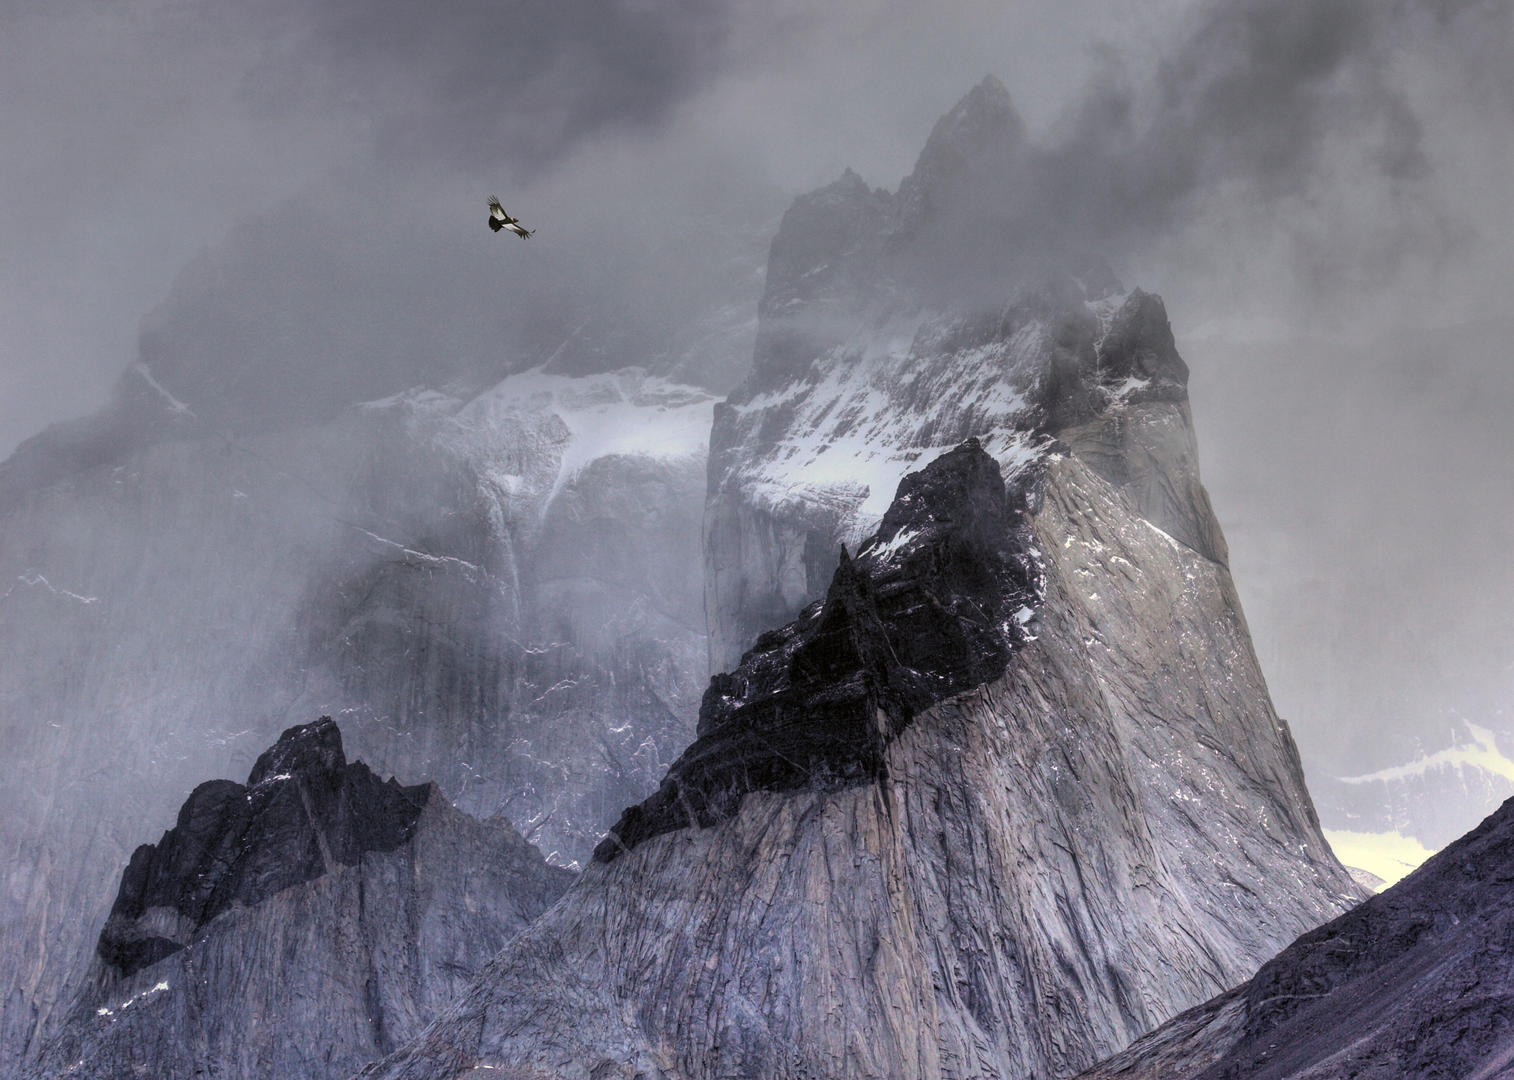 Condor over mountains por Ben Hall